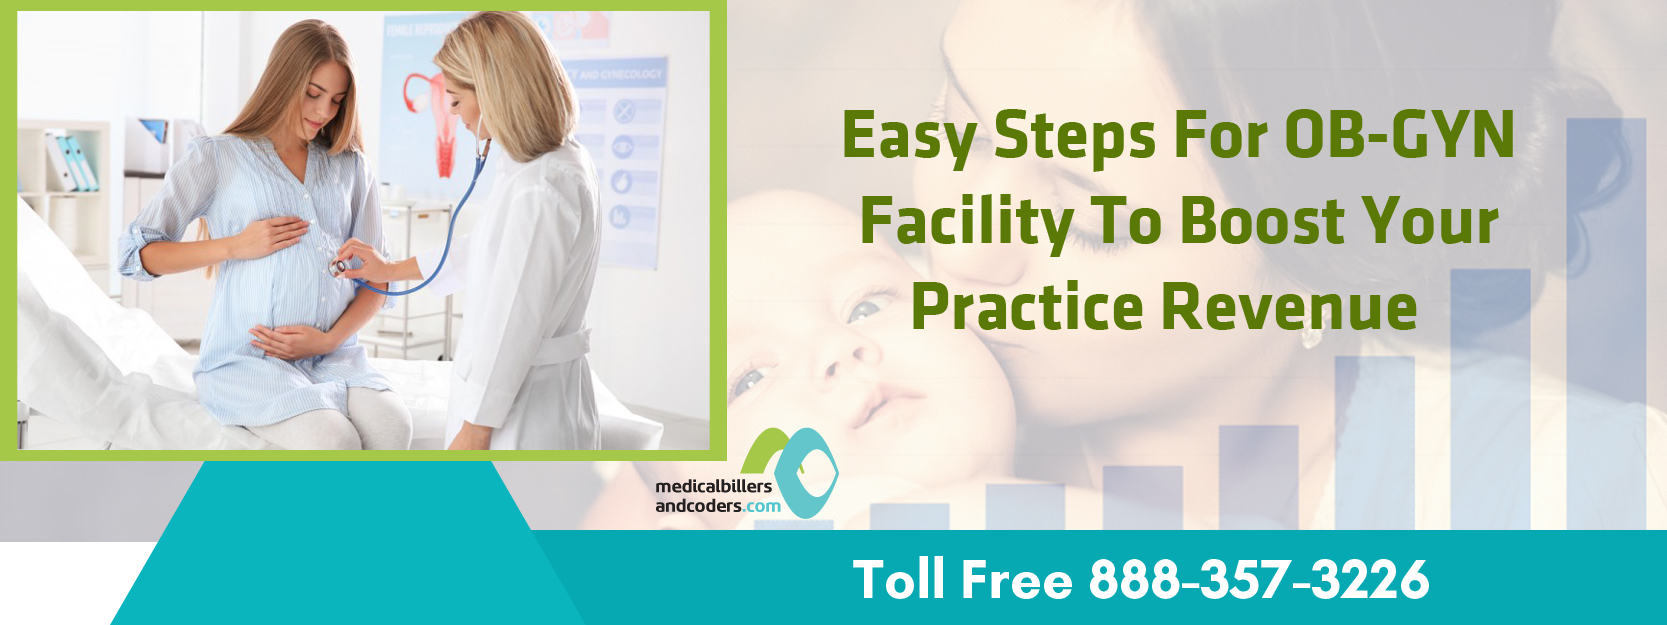 Easy Steps for OB GYN Facility to Boost Your Practice Revenue